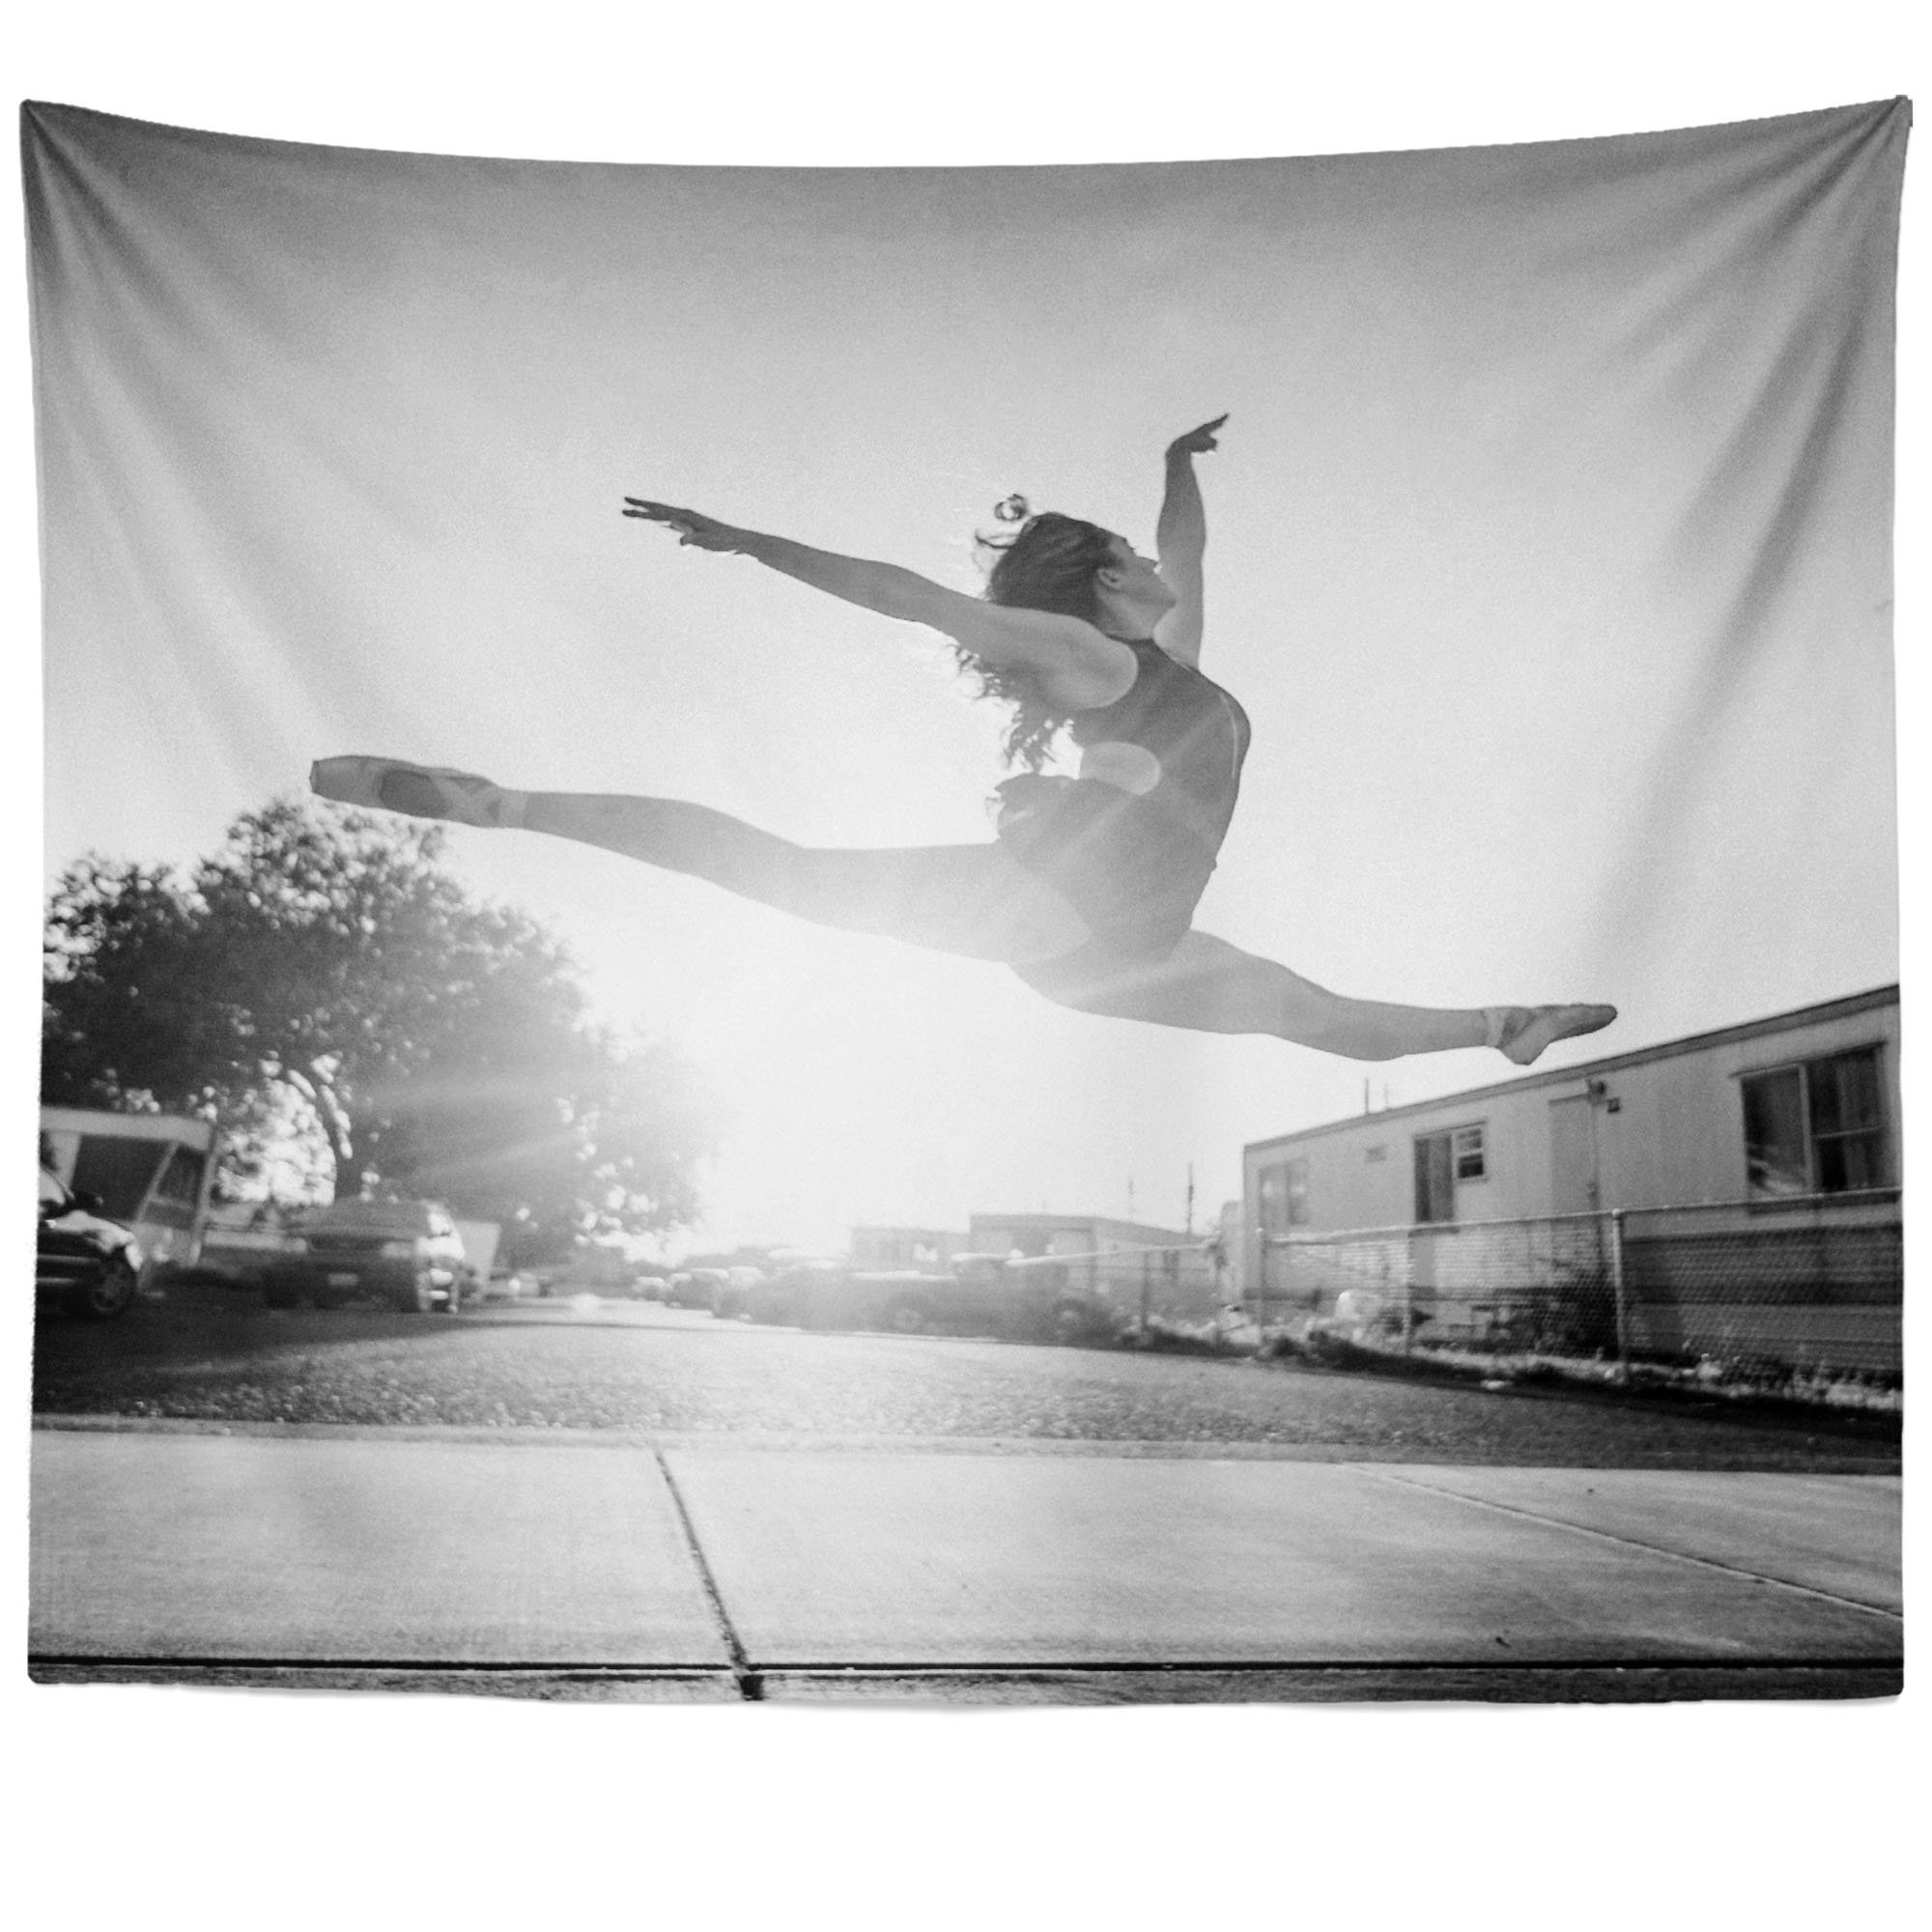 Westlake Art - Woman Dance - Wall Hanging Tapestry - Picture Photography Artwork Home Decor Living Room - 51x60 Inch